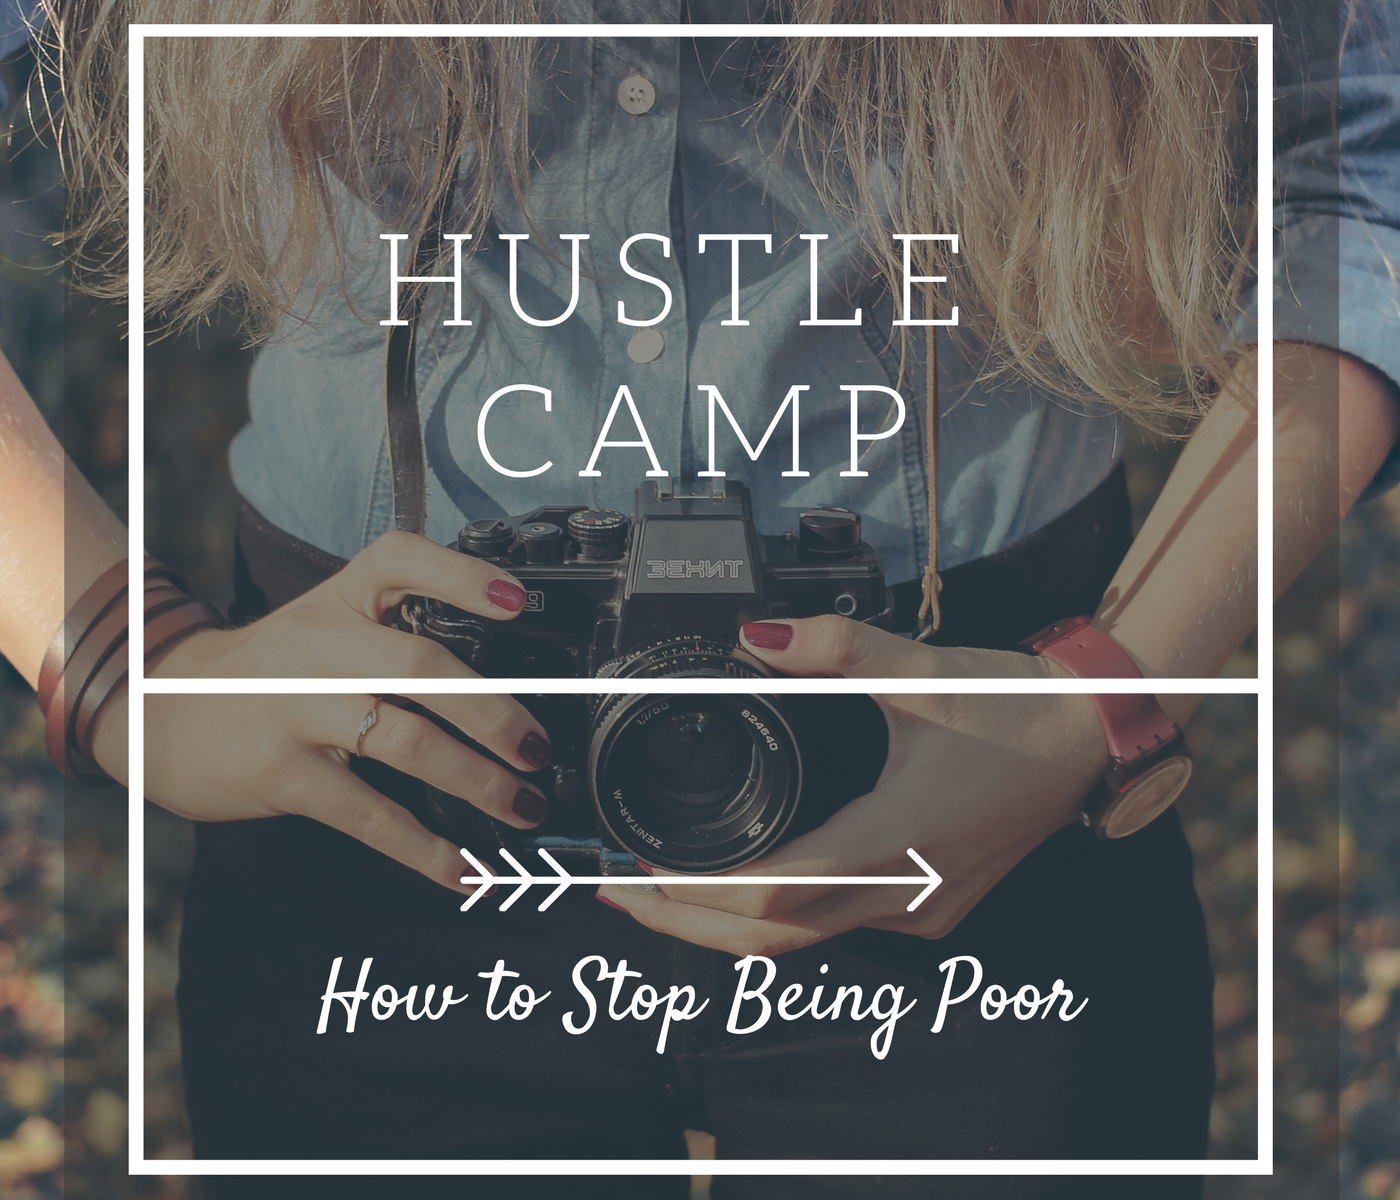 Hustle Camp - How to Stop Being Poor